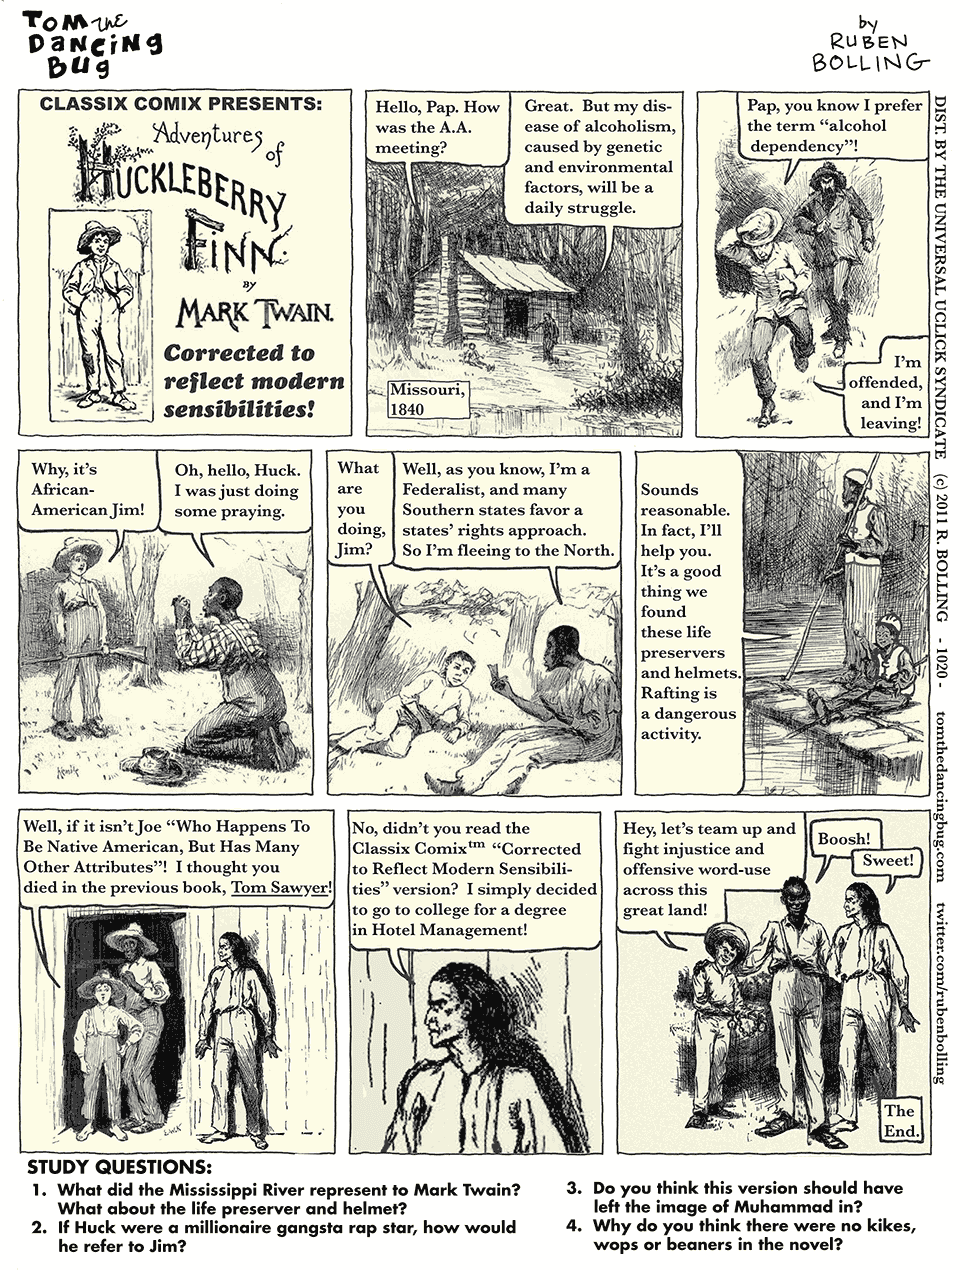 questioning the maturity in the character of huckleberry finn In the adventures of huckleberry finn, the growth of maturity in the main character, huck finn, is apparent.